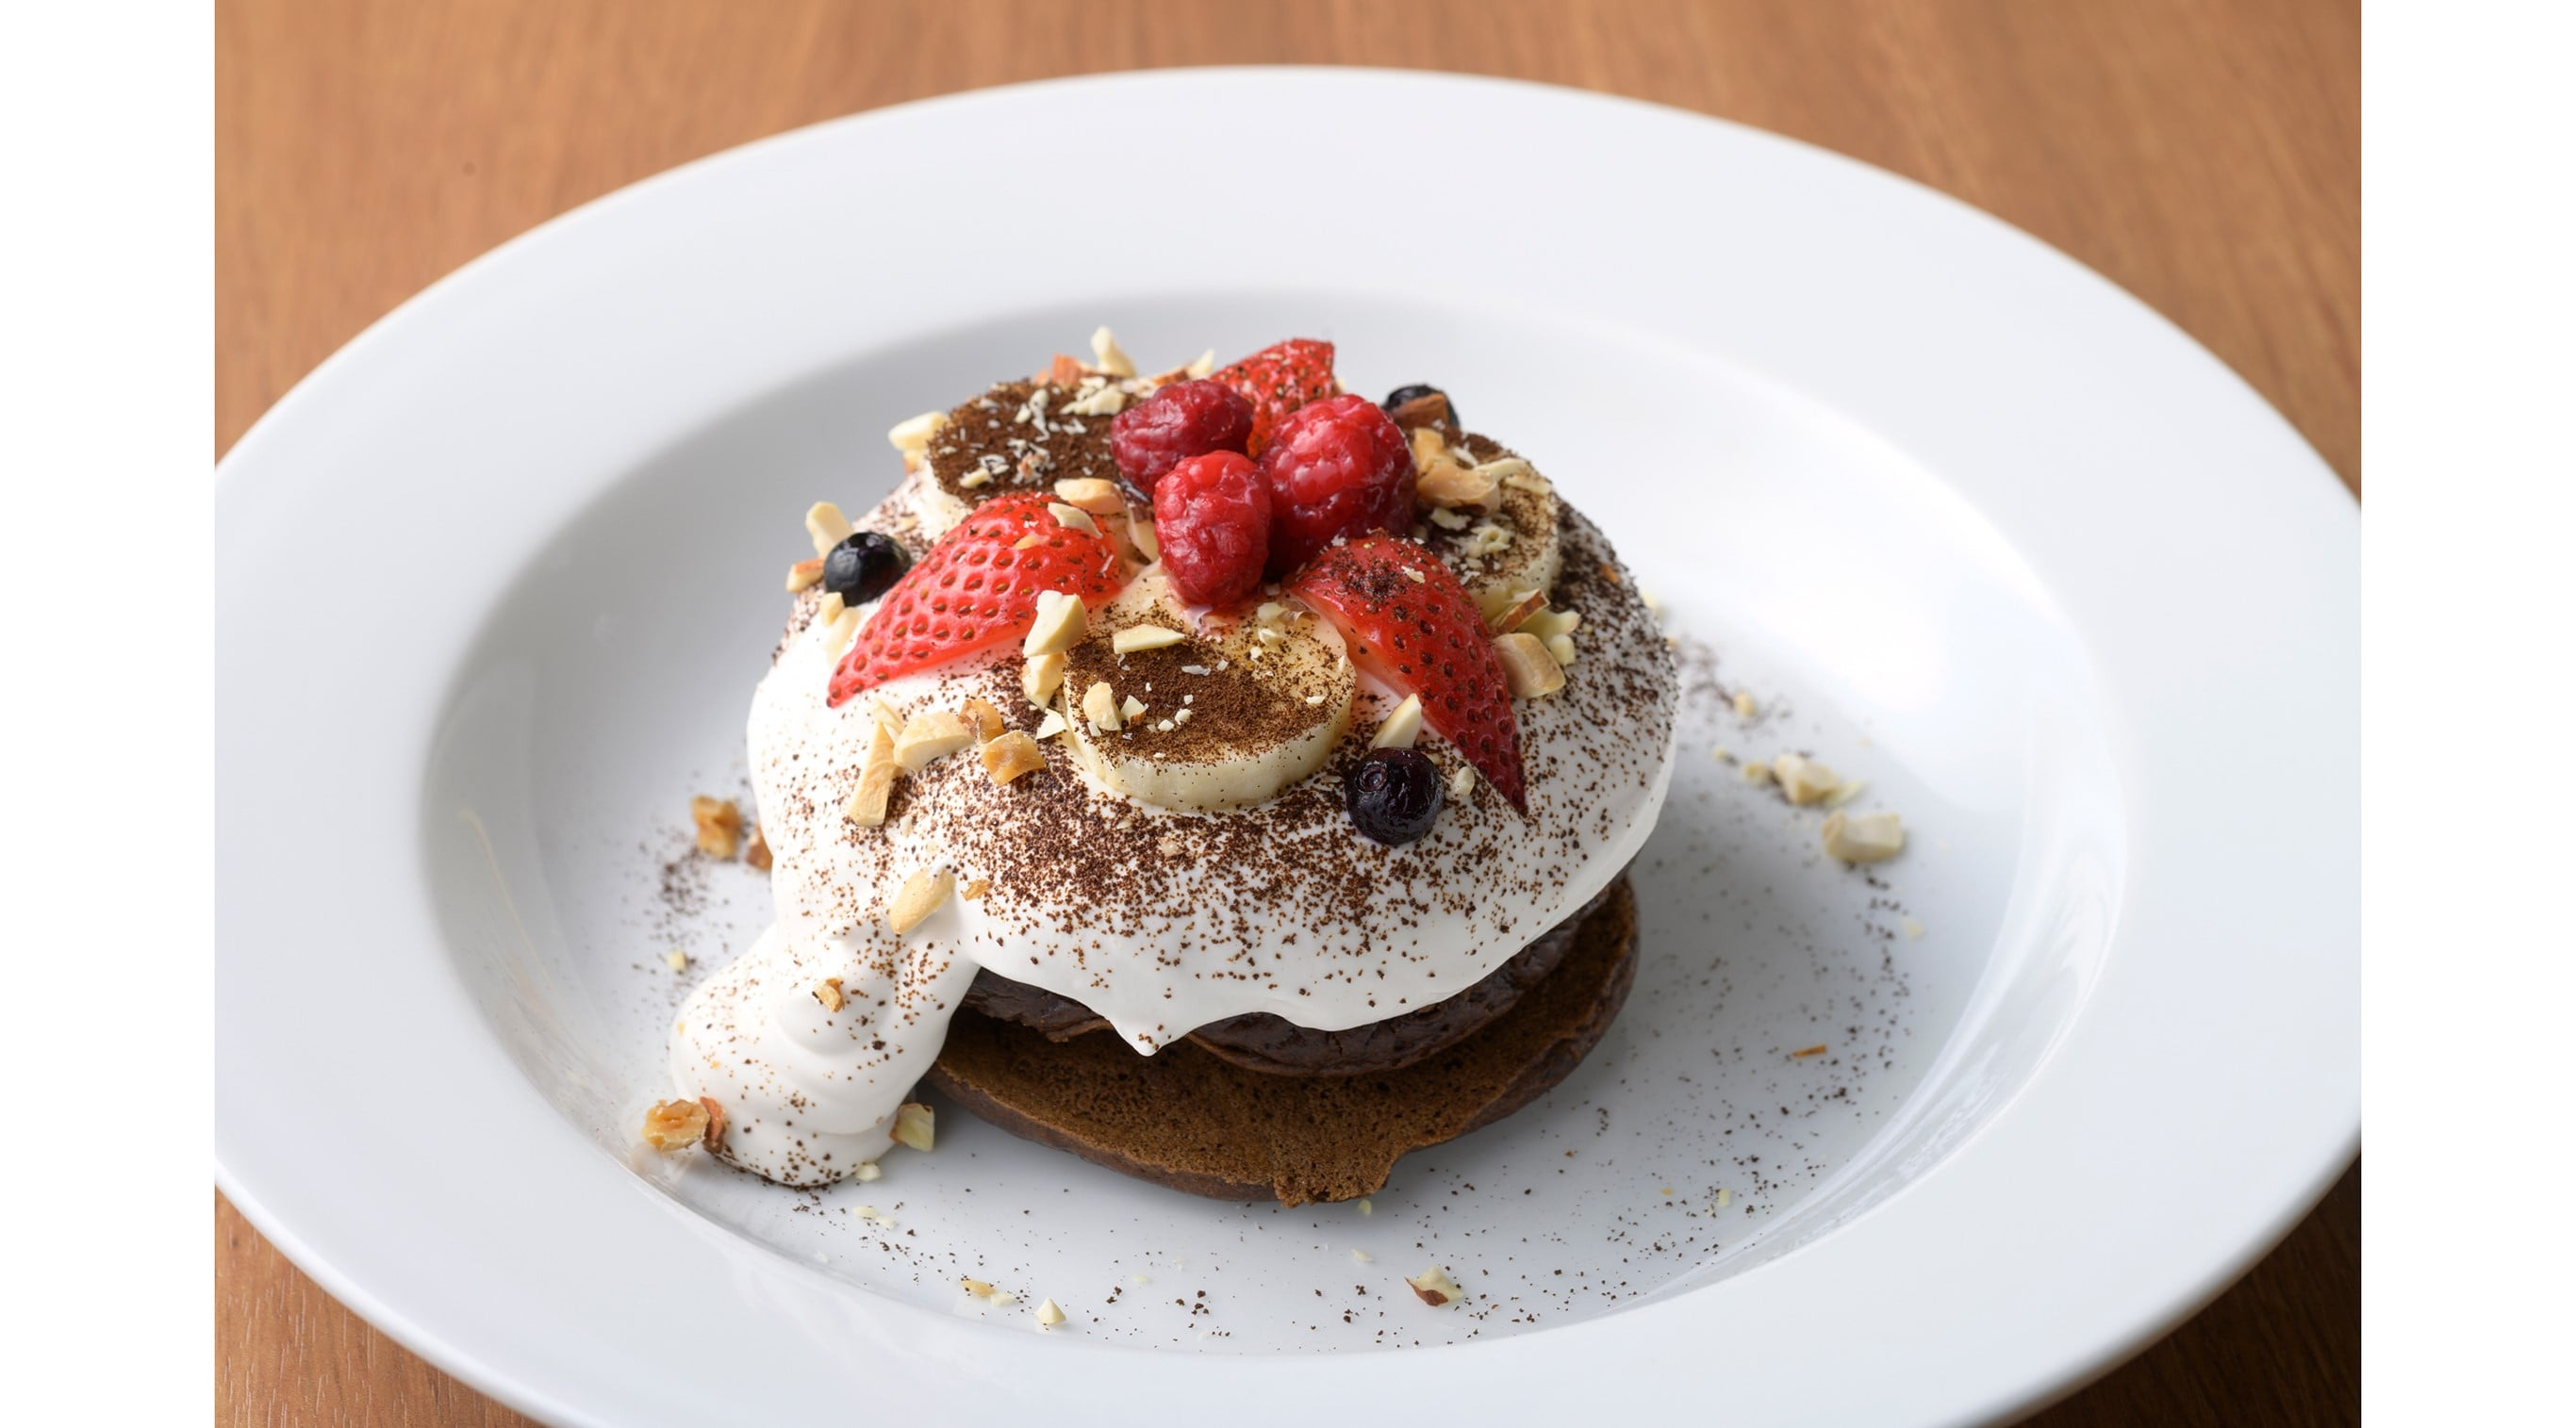 The Detox Brown Pancakes are made of roasted brown rice flour and they effectively detox the body.